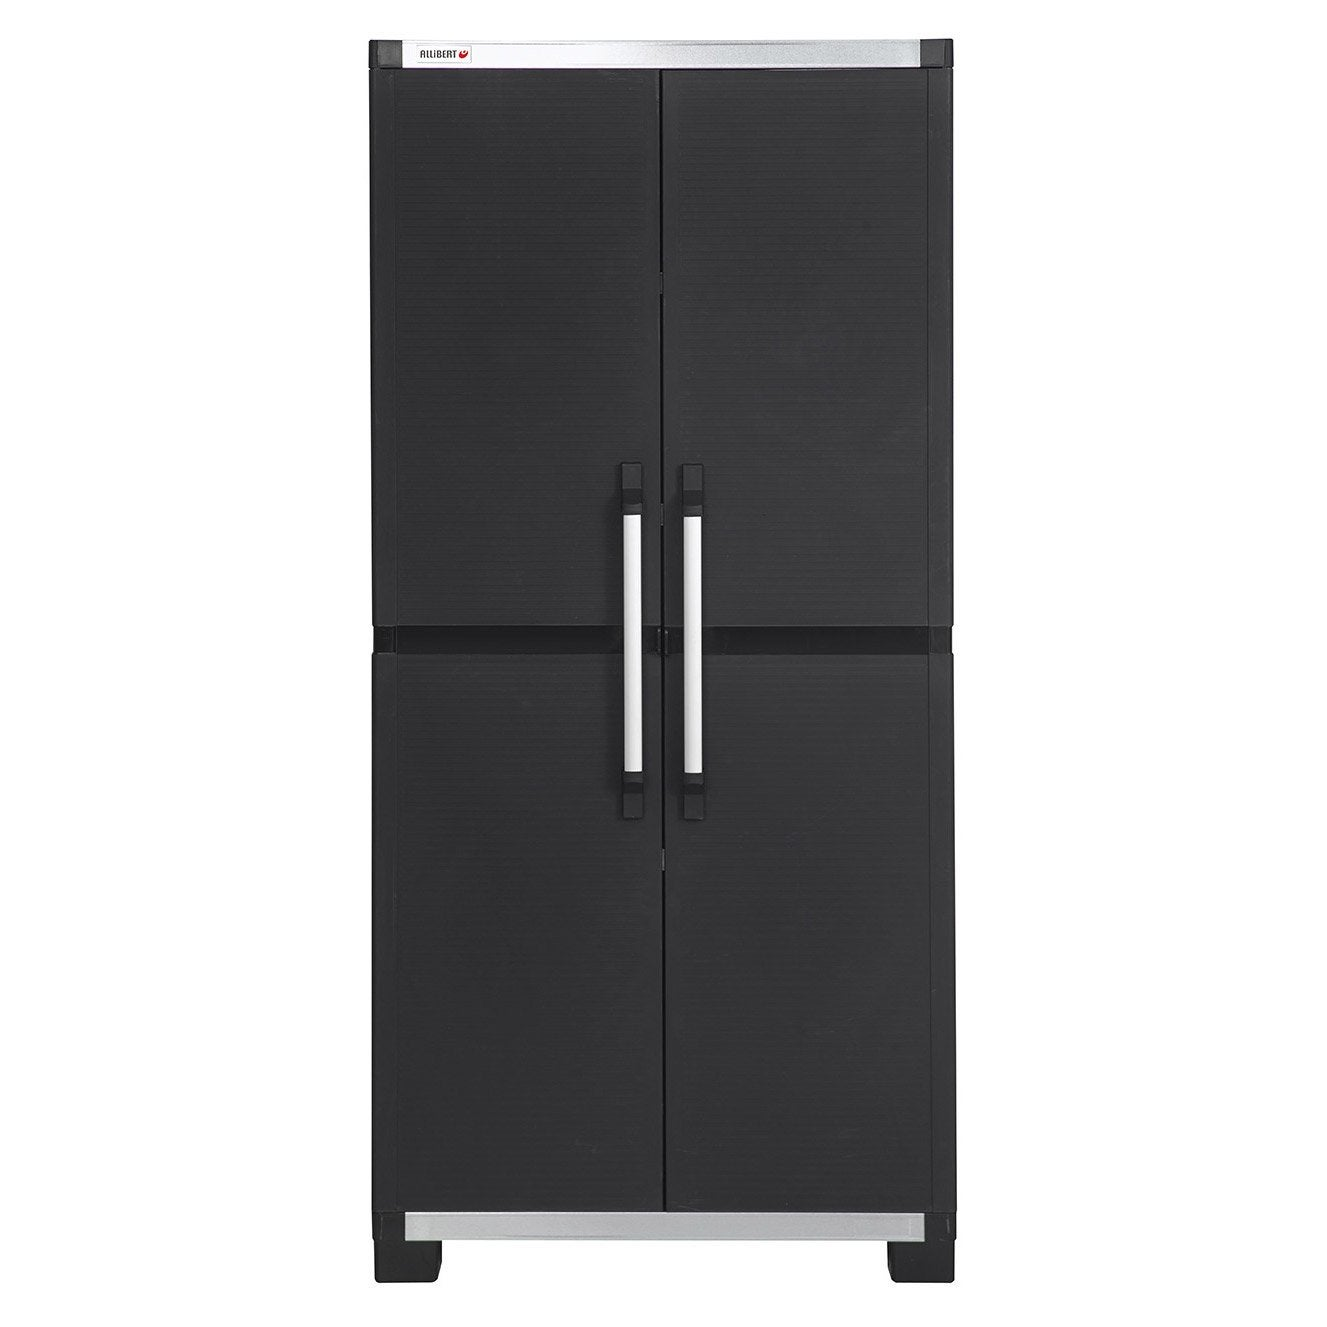 armoire haute r sine 3 tablettes allibert xl pro x h. Black Bedroom Furniture Sets. Home Design Ideas